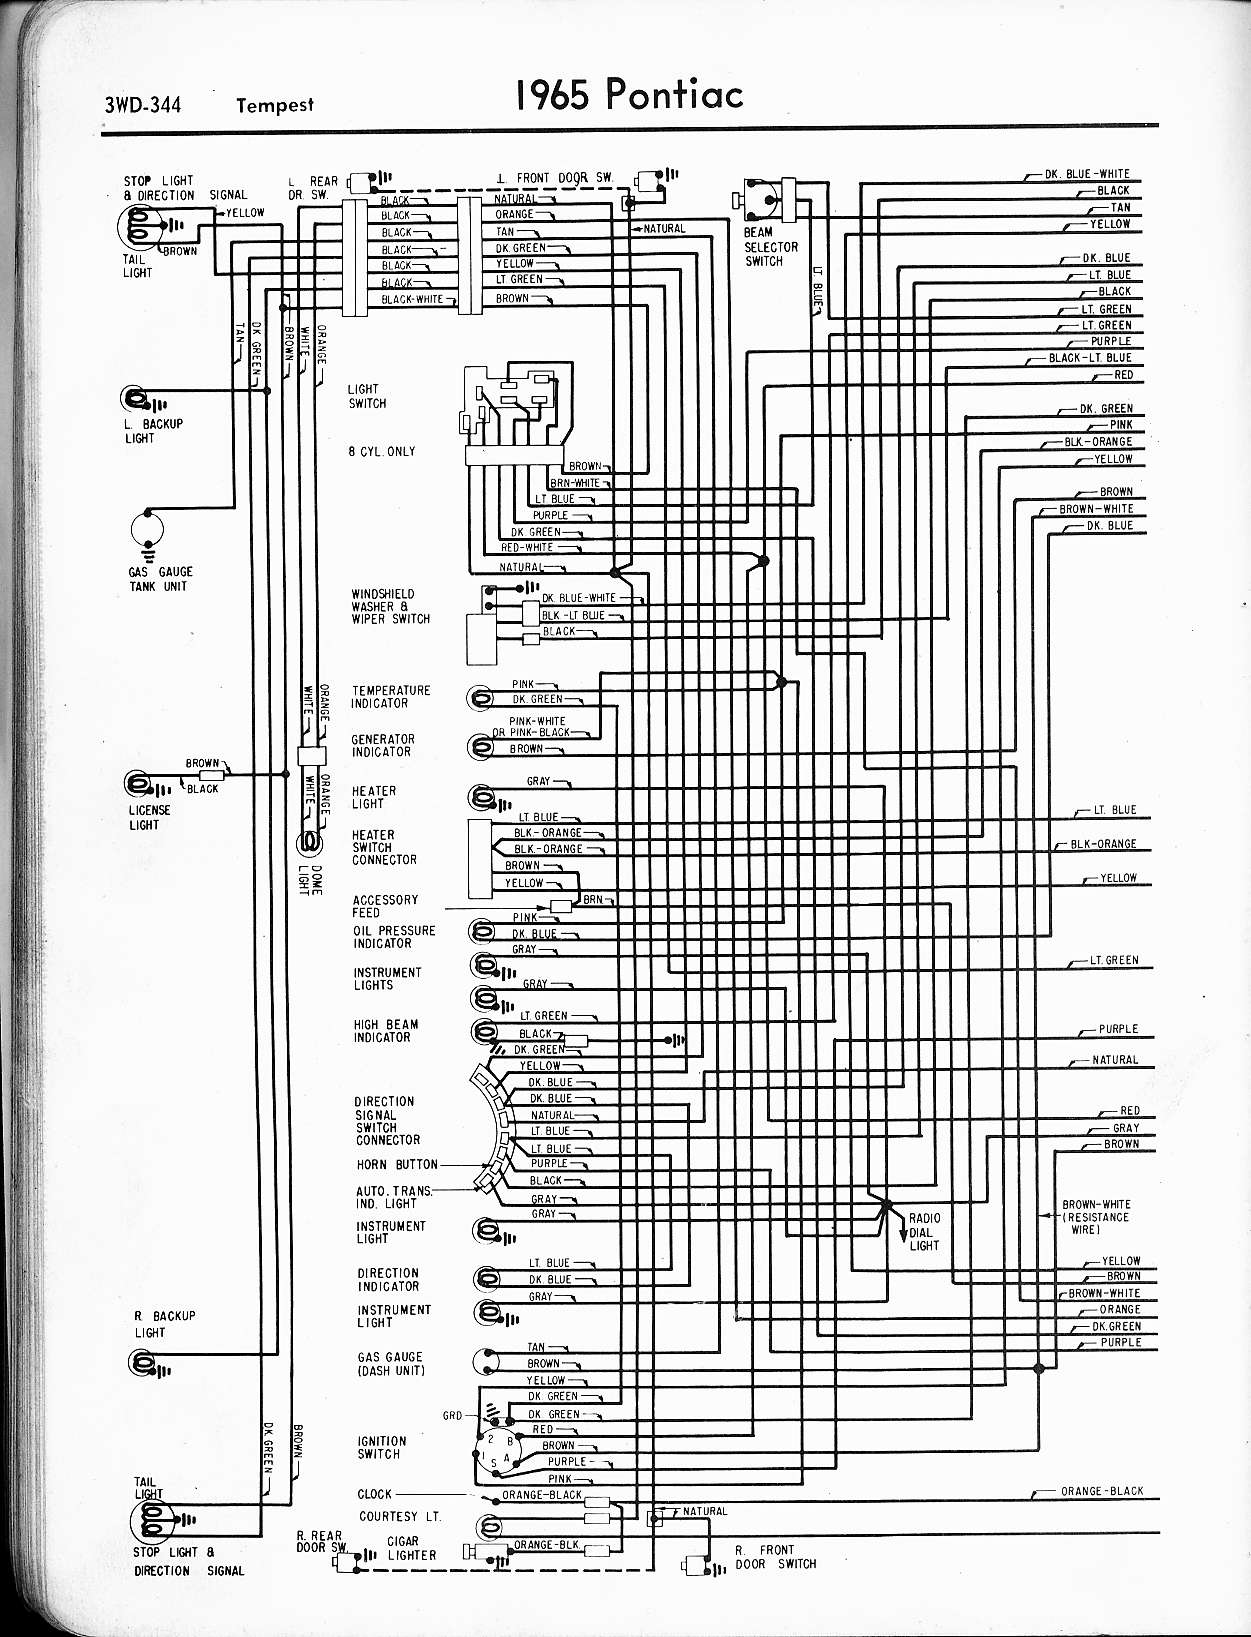 wallace racing wiring diagrams rh wallaceracing com 2009 Pontiac G6 Wiring-Diagram 1966 Pontiac OHC Wiring-Diagram